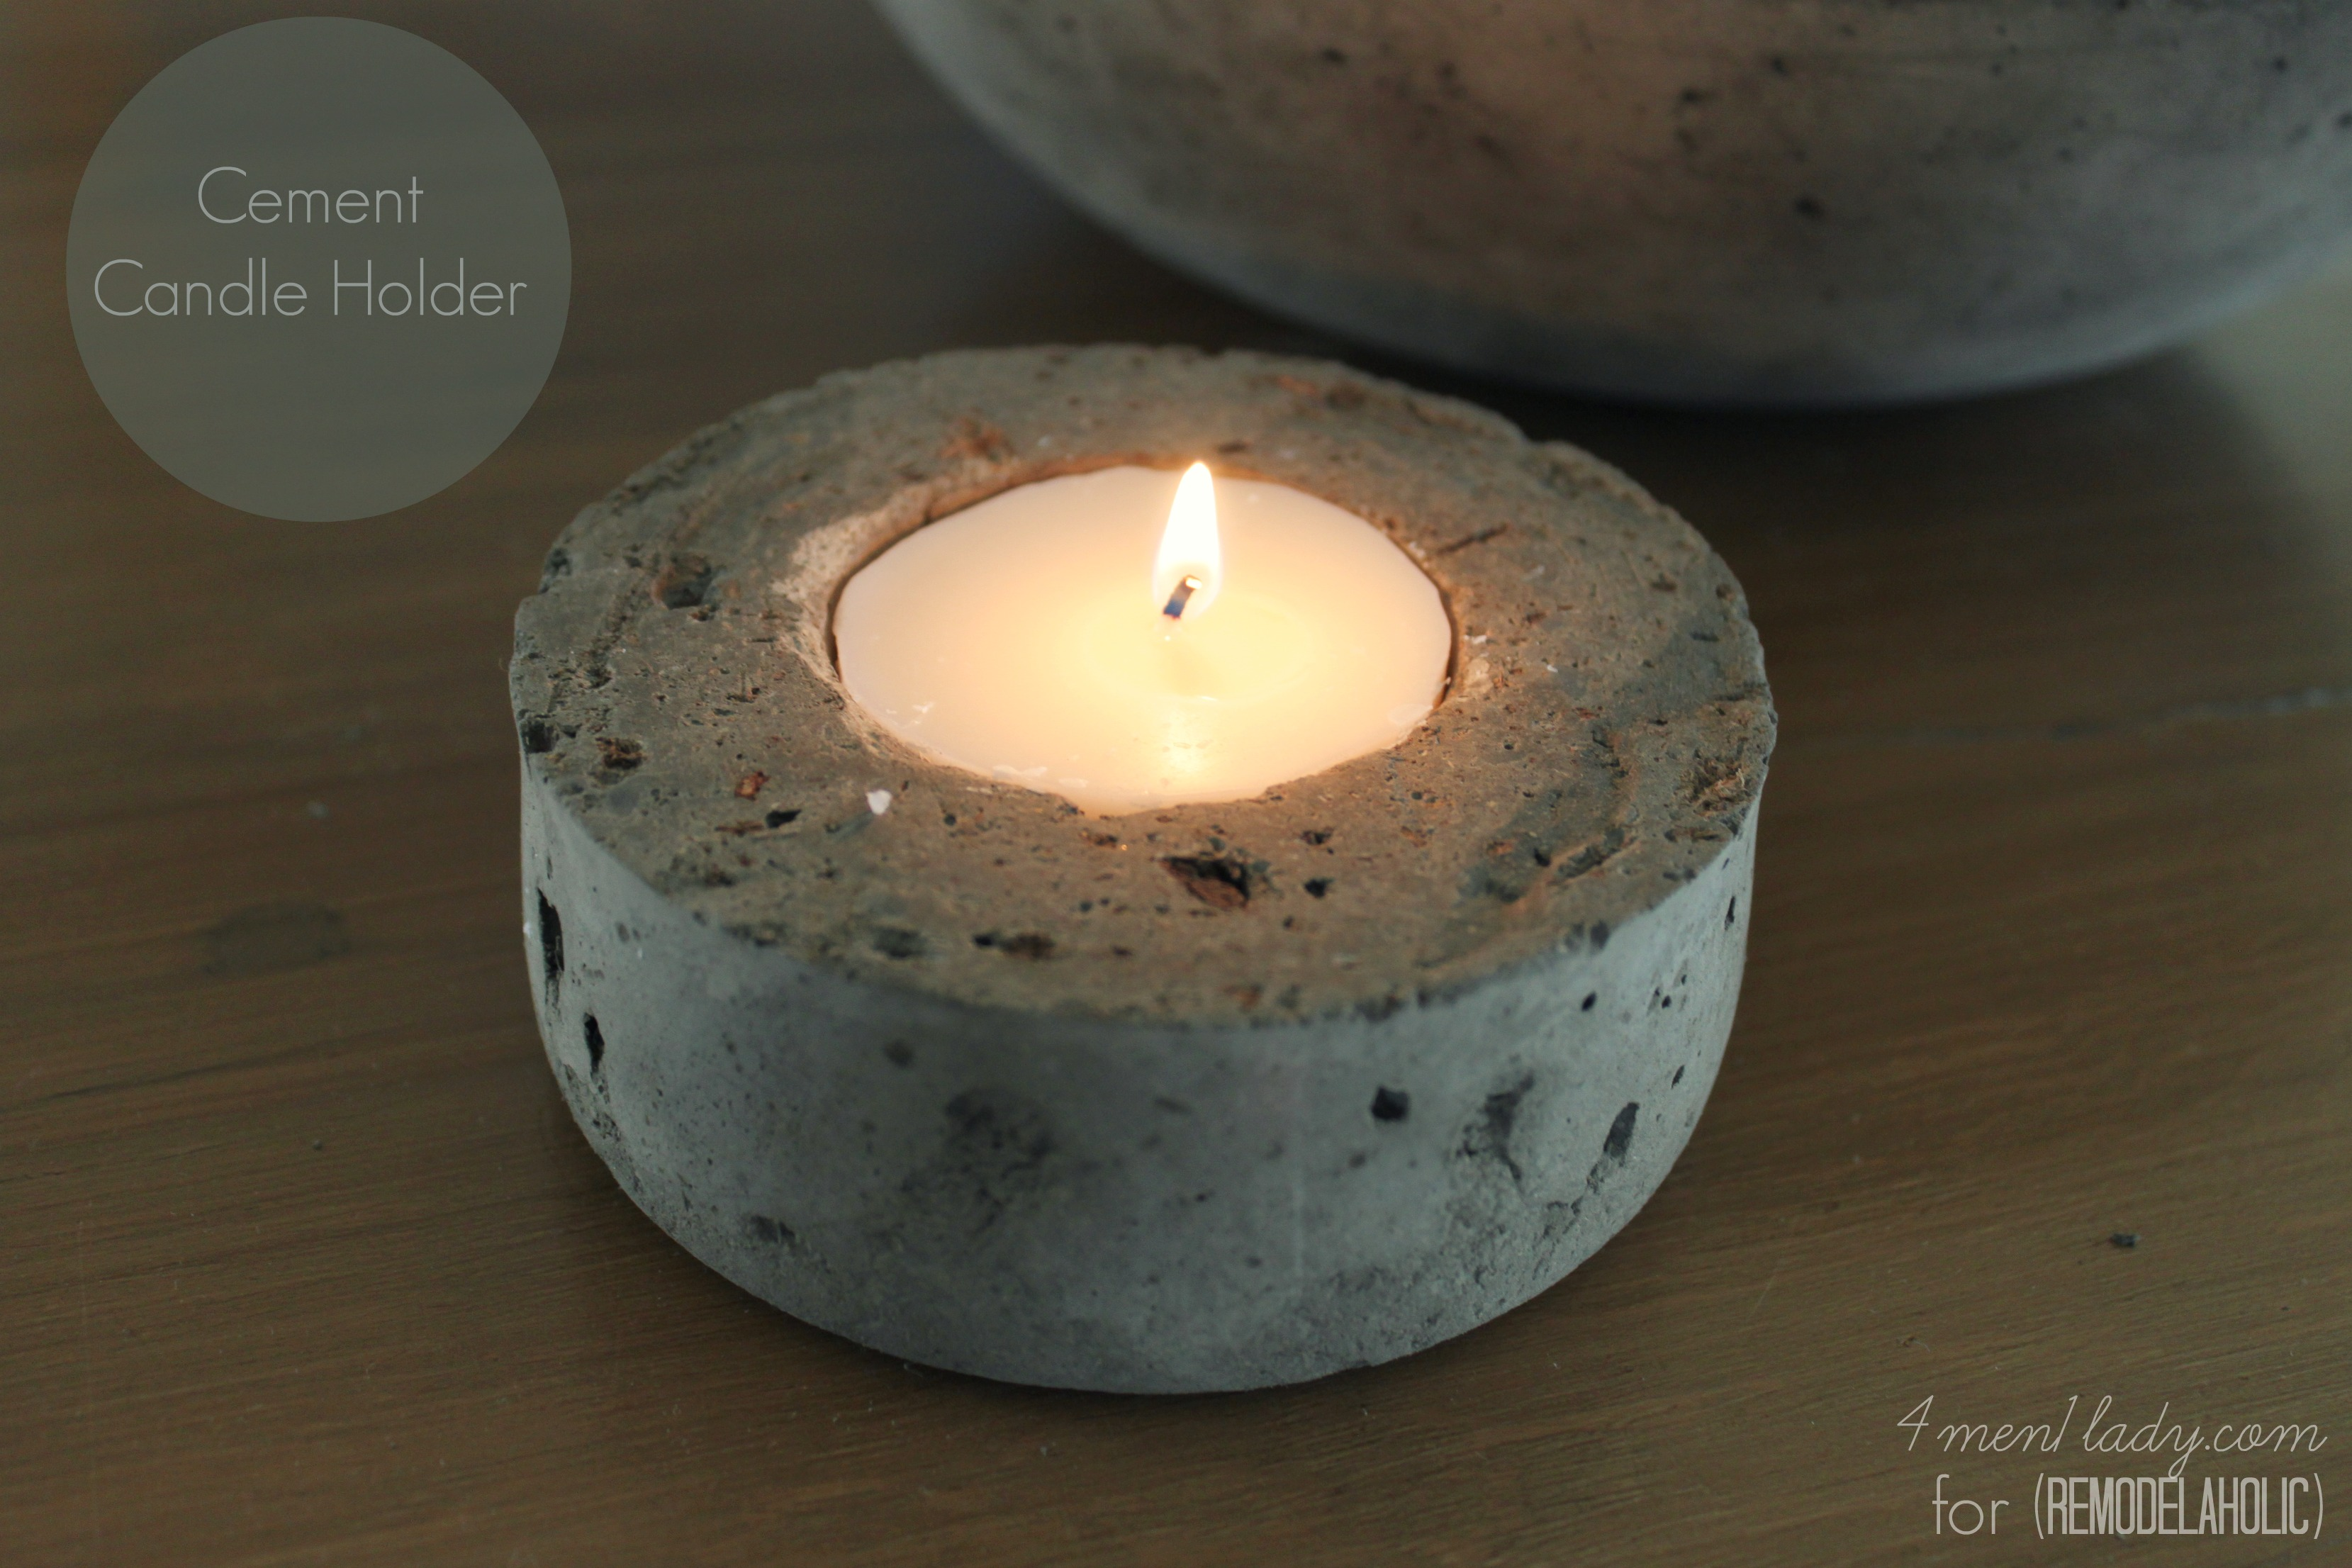 4men1lady for Remodelaholic candle